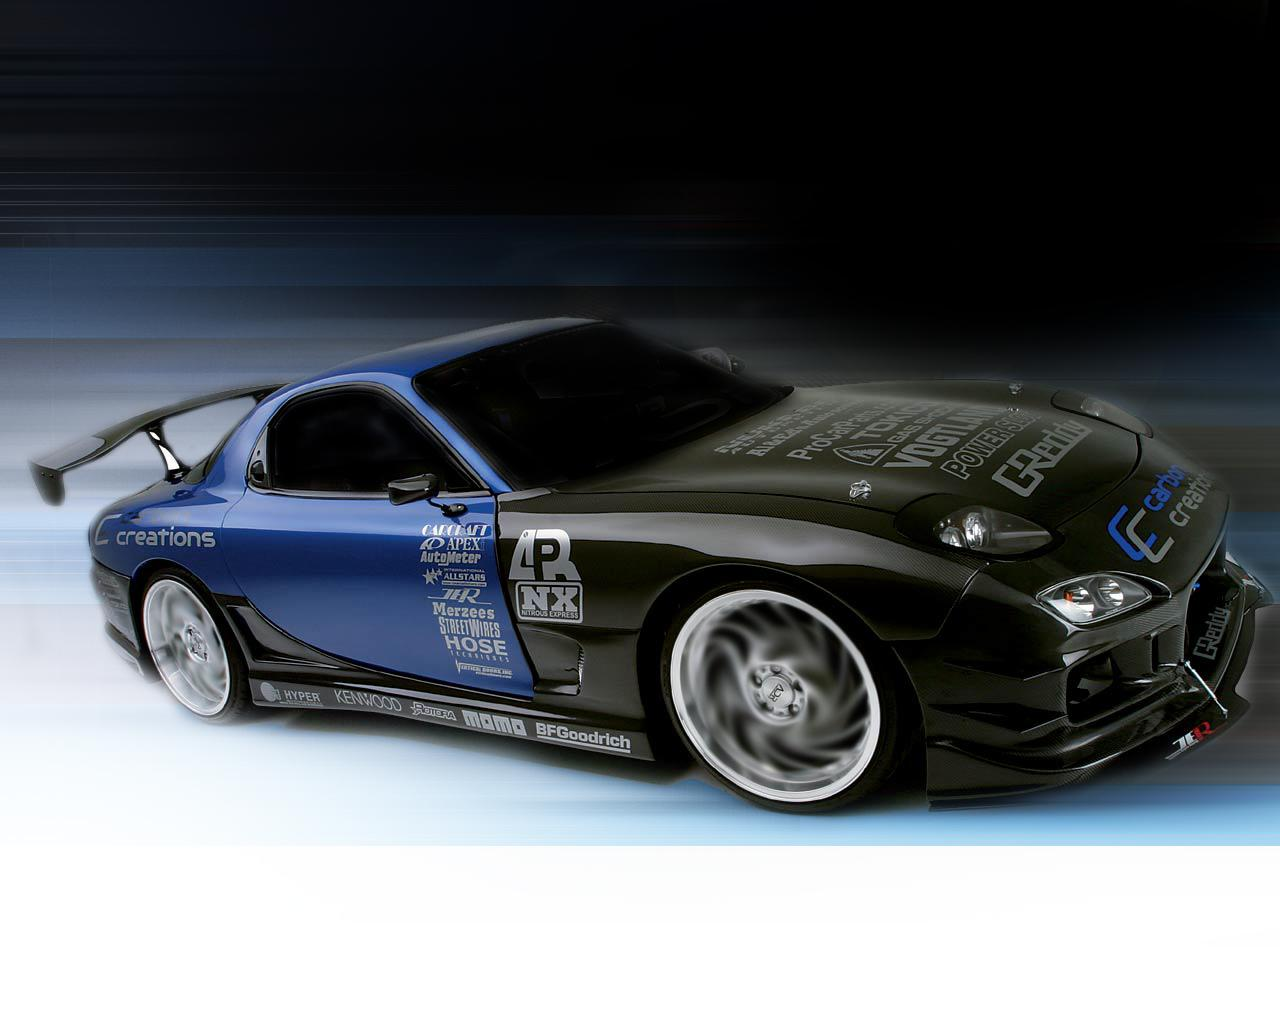 Sports Car Wallpapers For Desktop: [76+] Sports Cars Wallpapers For Desktop On WallpaperSafari